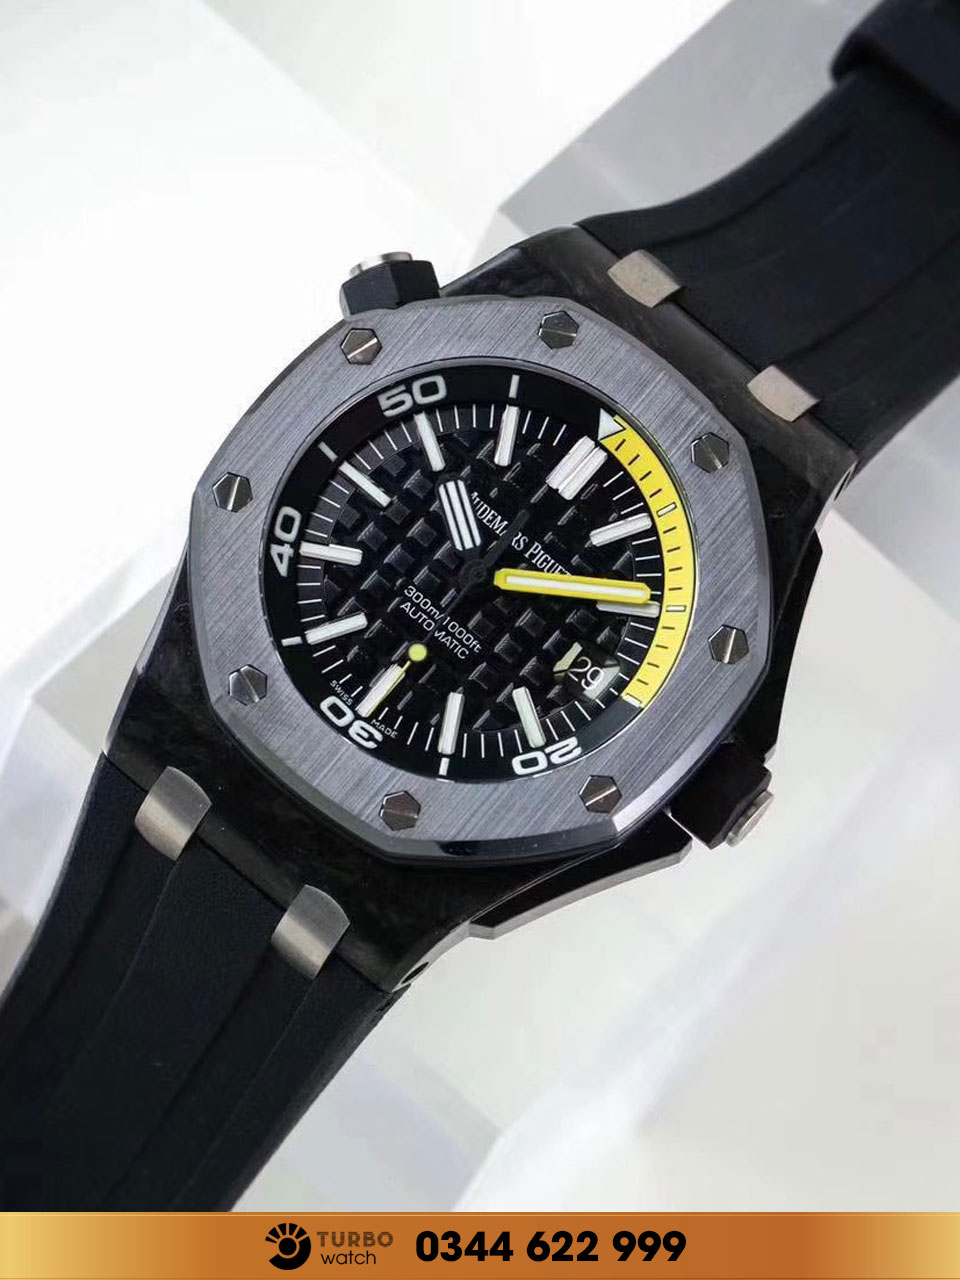 Audemas piguet Royal Oak Offshore Diver fake 1-1 cao cấp